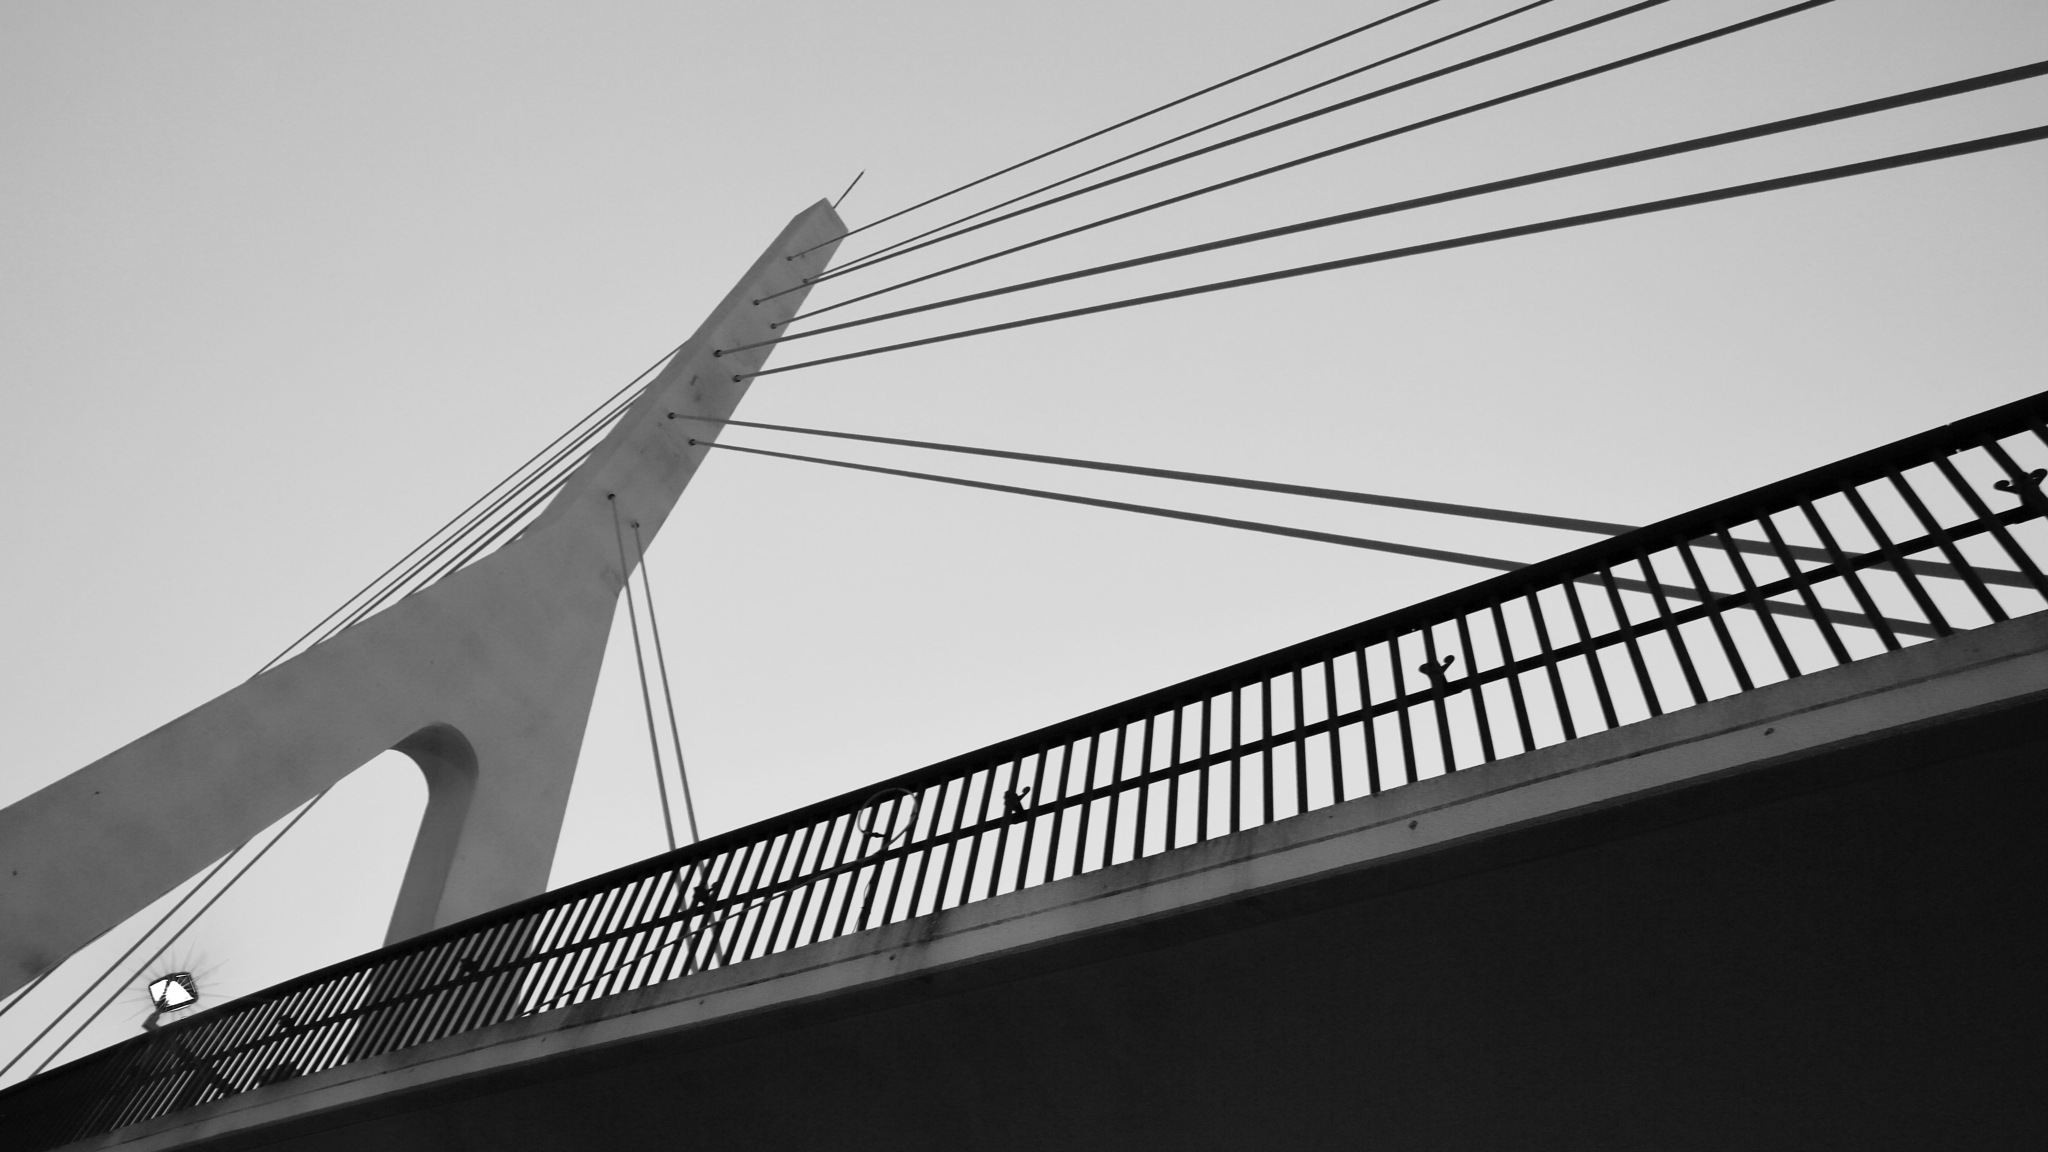 Cable-stayed bridge by leecj0129